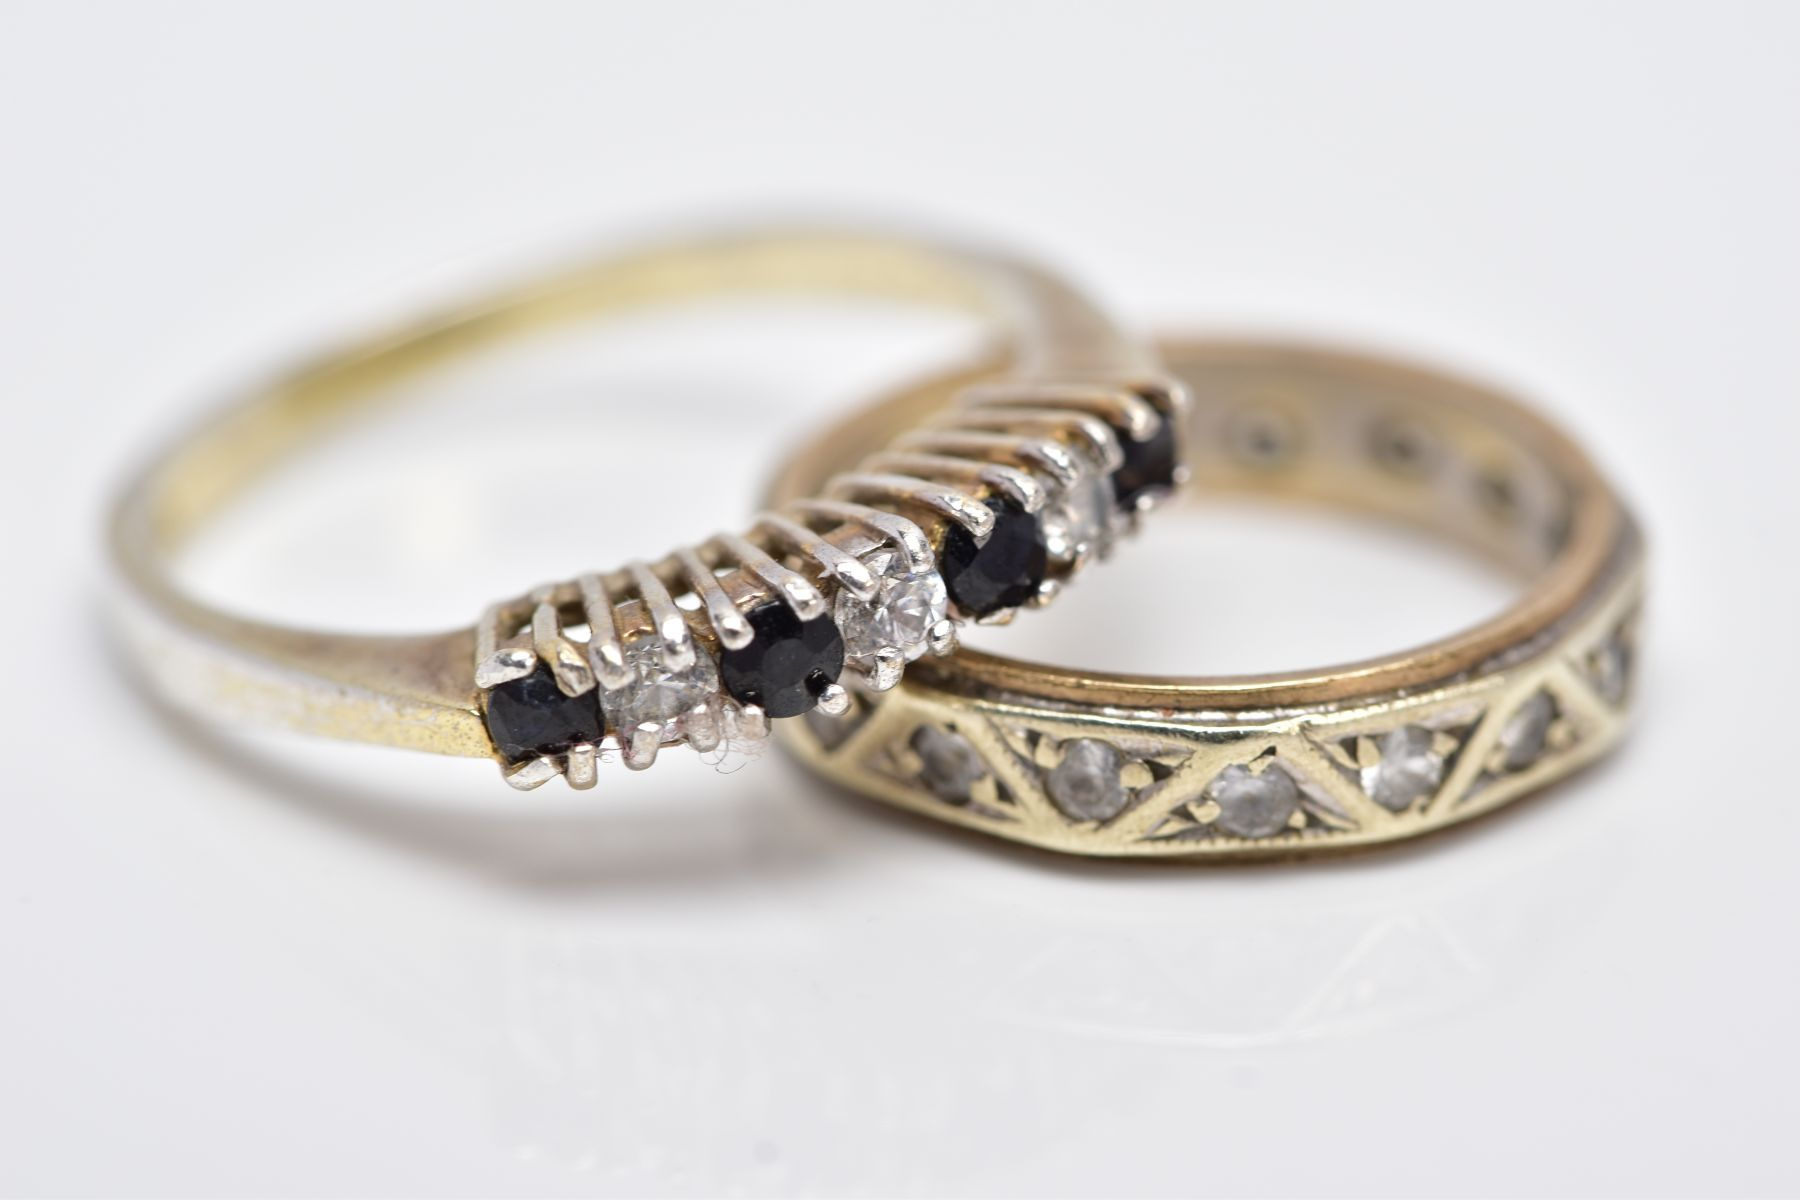 A YELLOW METAL FULL ETERNITY RING AND A SILVER GEM SET RING, the full eternity ring set with - Image 2 of 3